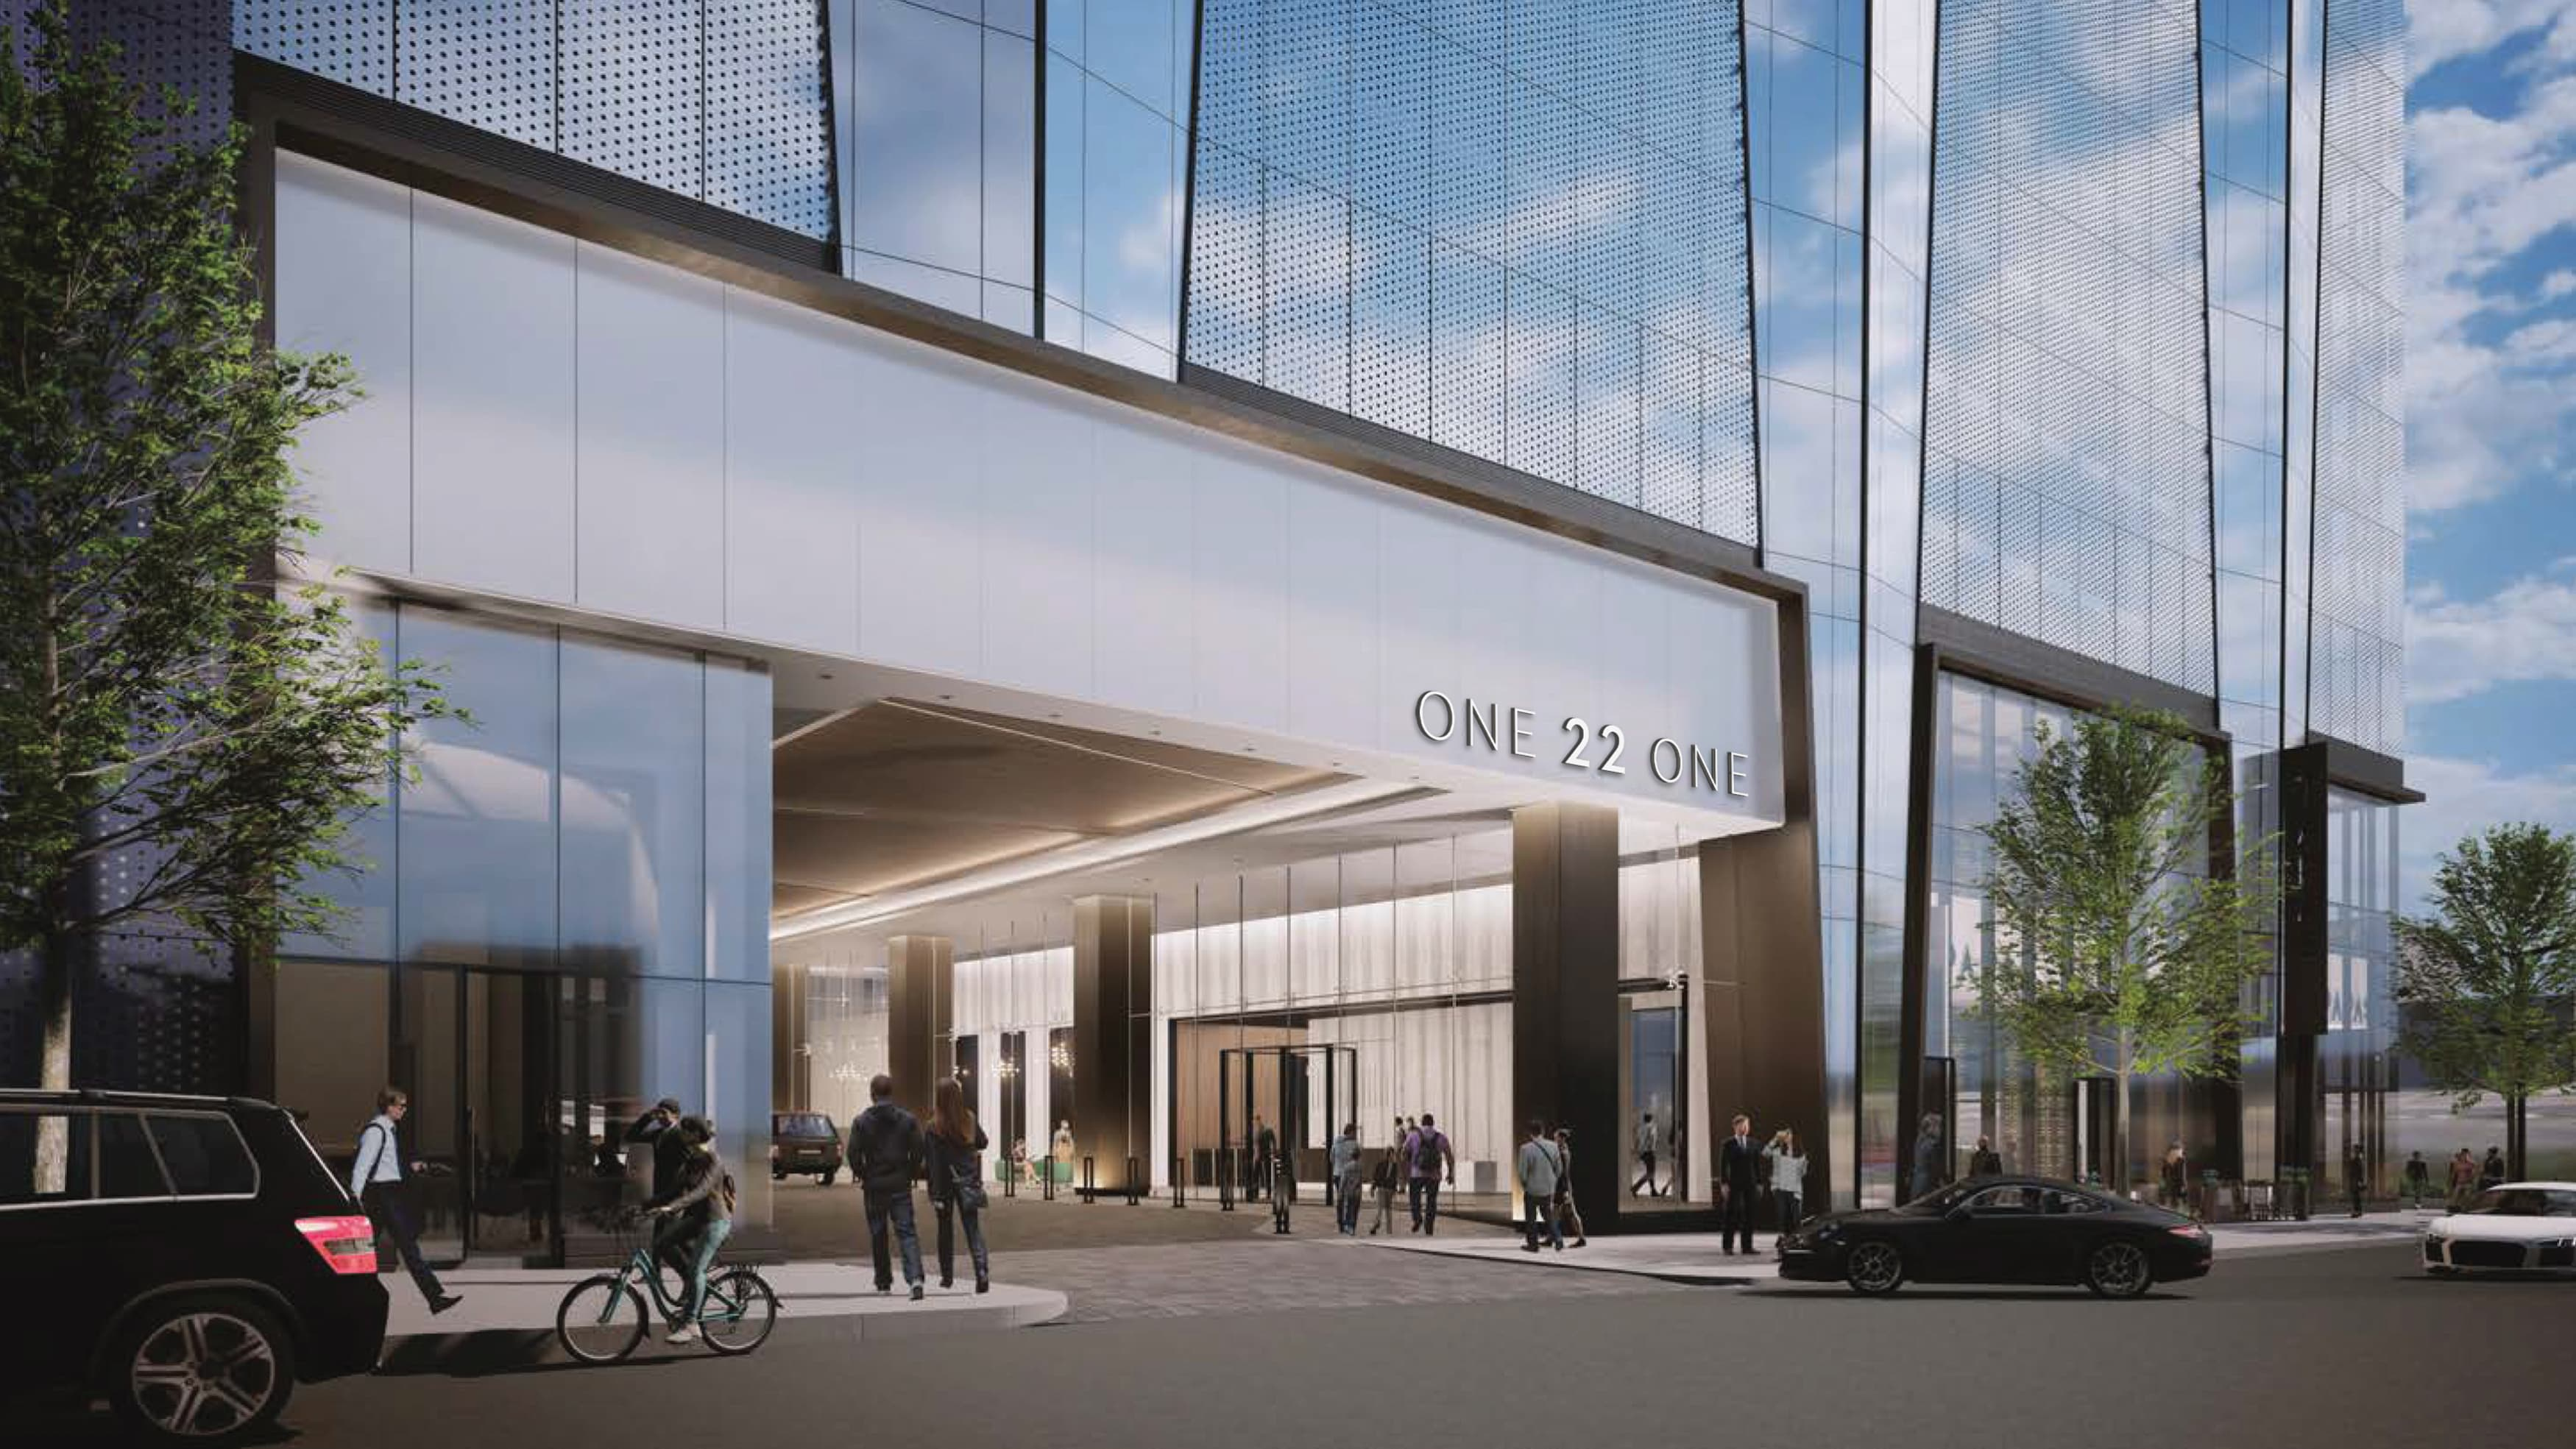 Architectural rendering of building entrance with applied building identity.